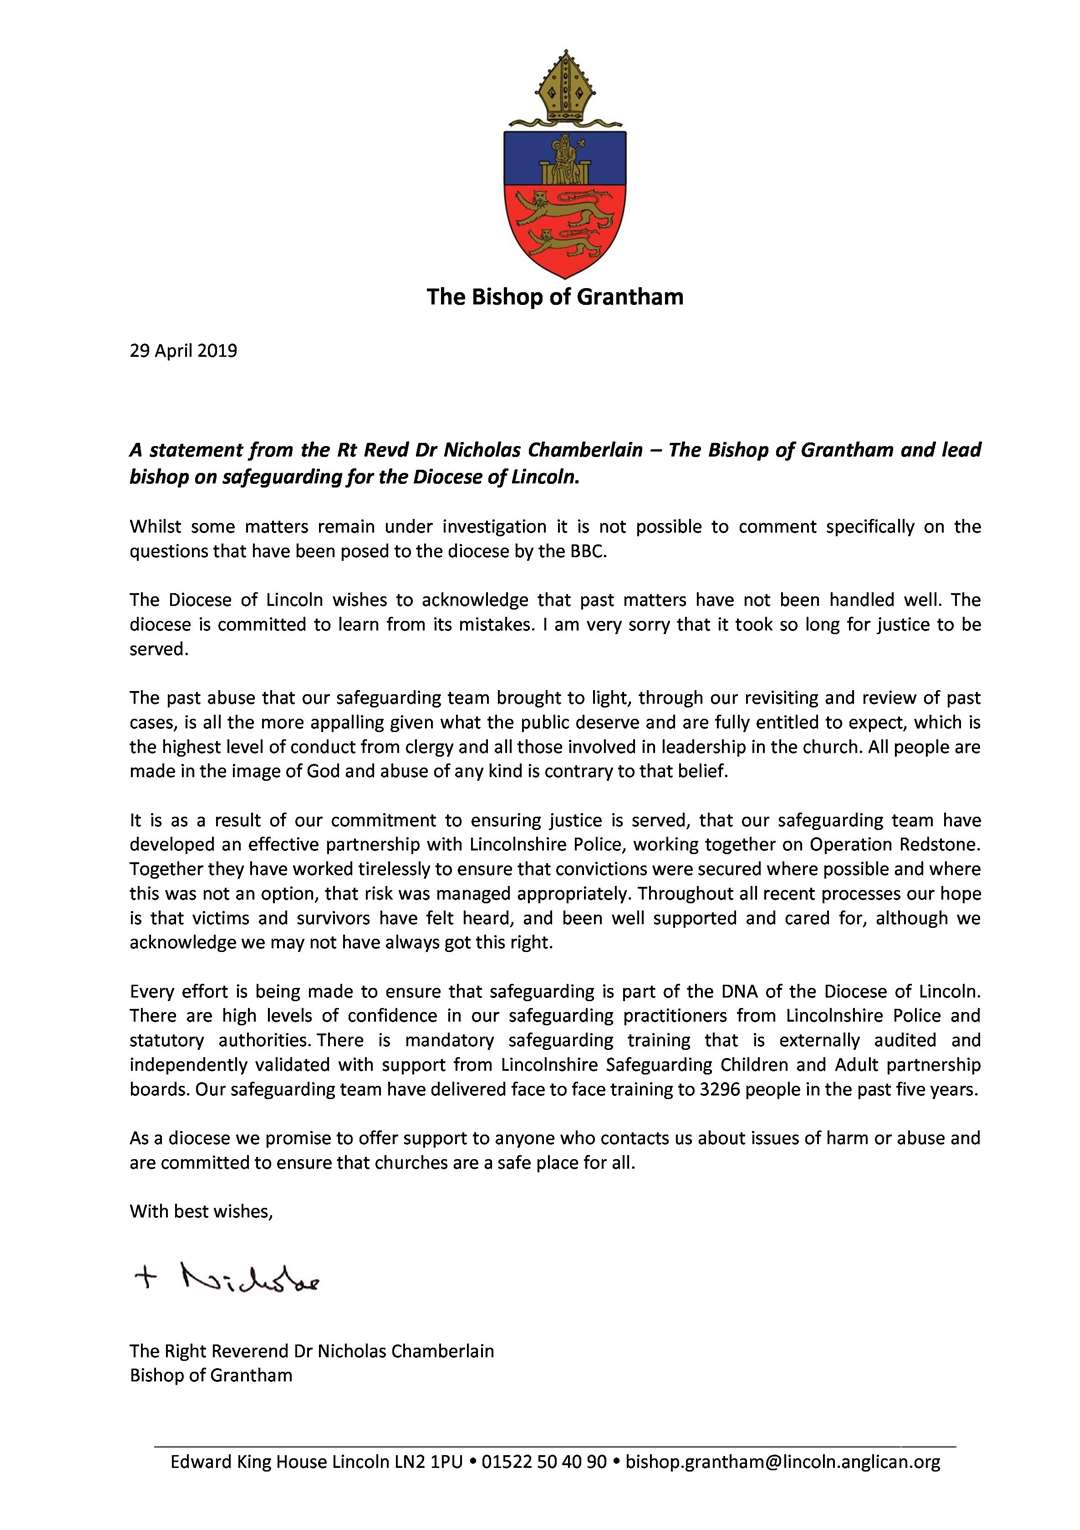 The statement from the Bishop of Grantham (9341500)